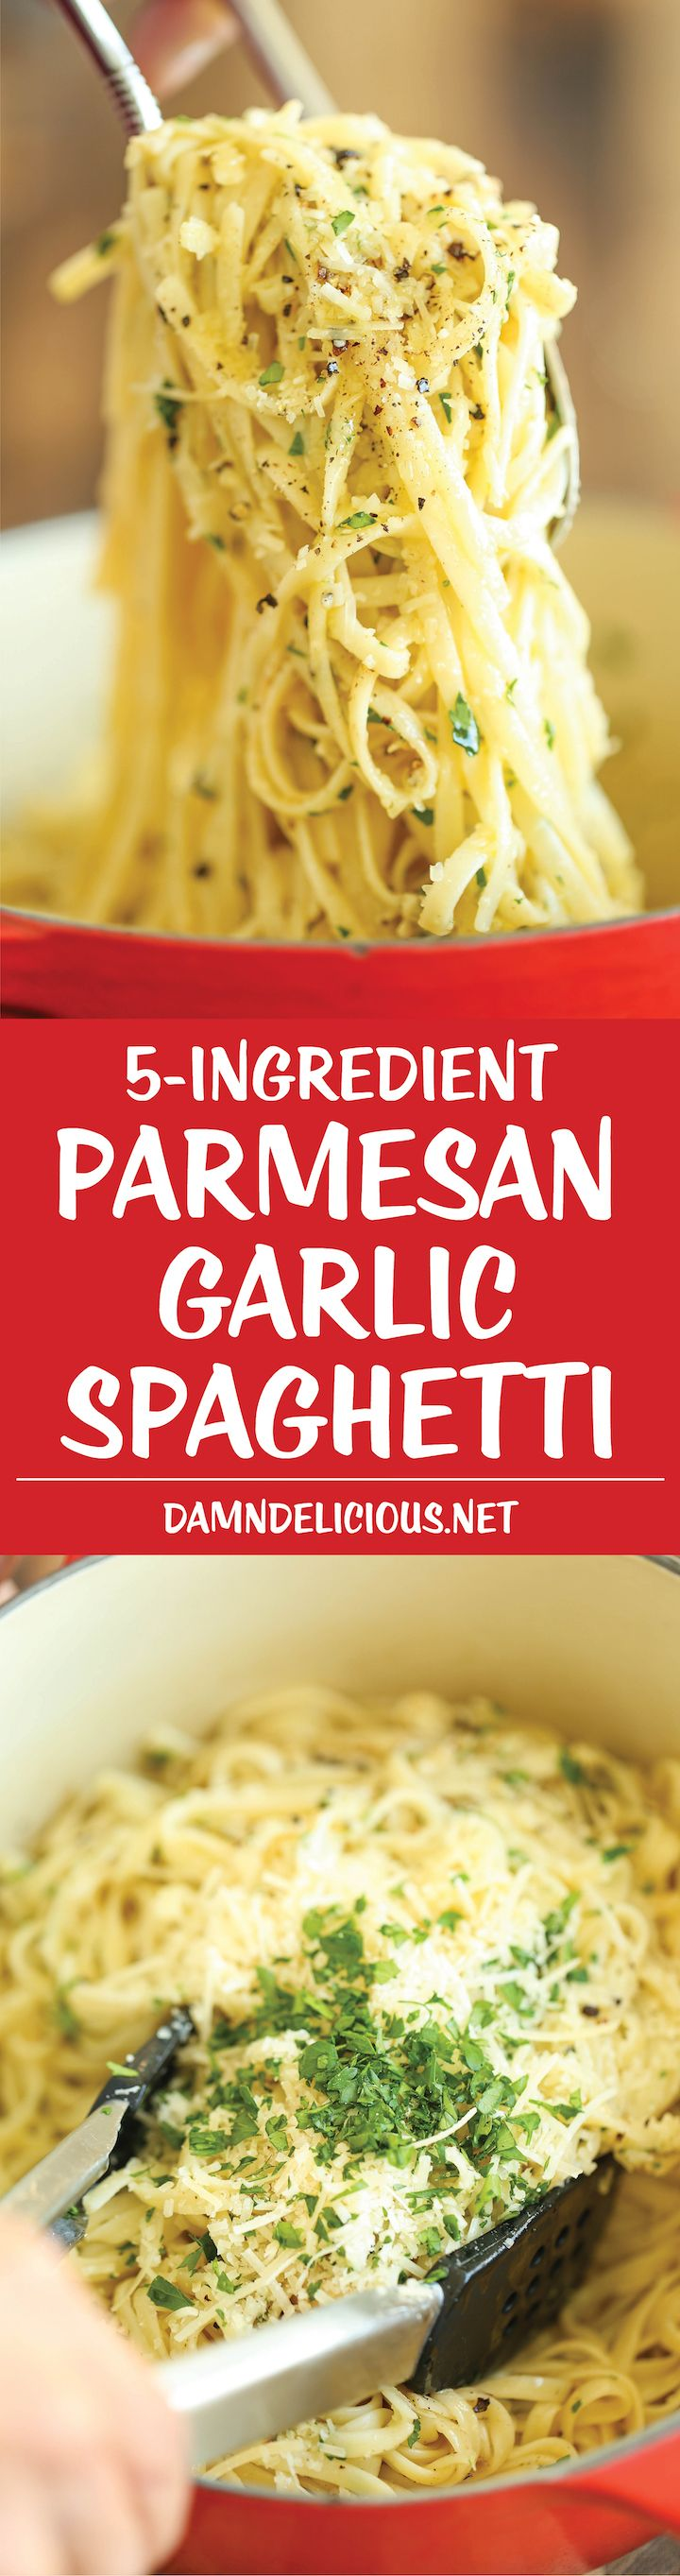 ... Garlic Spaghetti on Pinterest | Spagetti sauce, Brown pasta and Simple